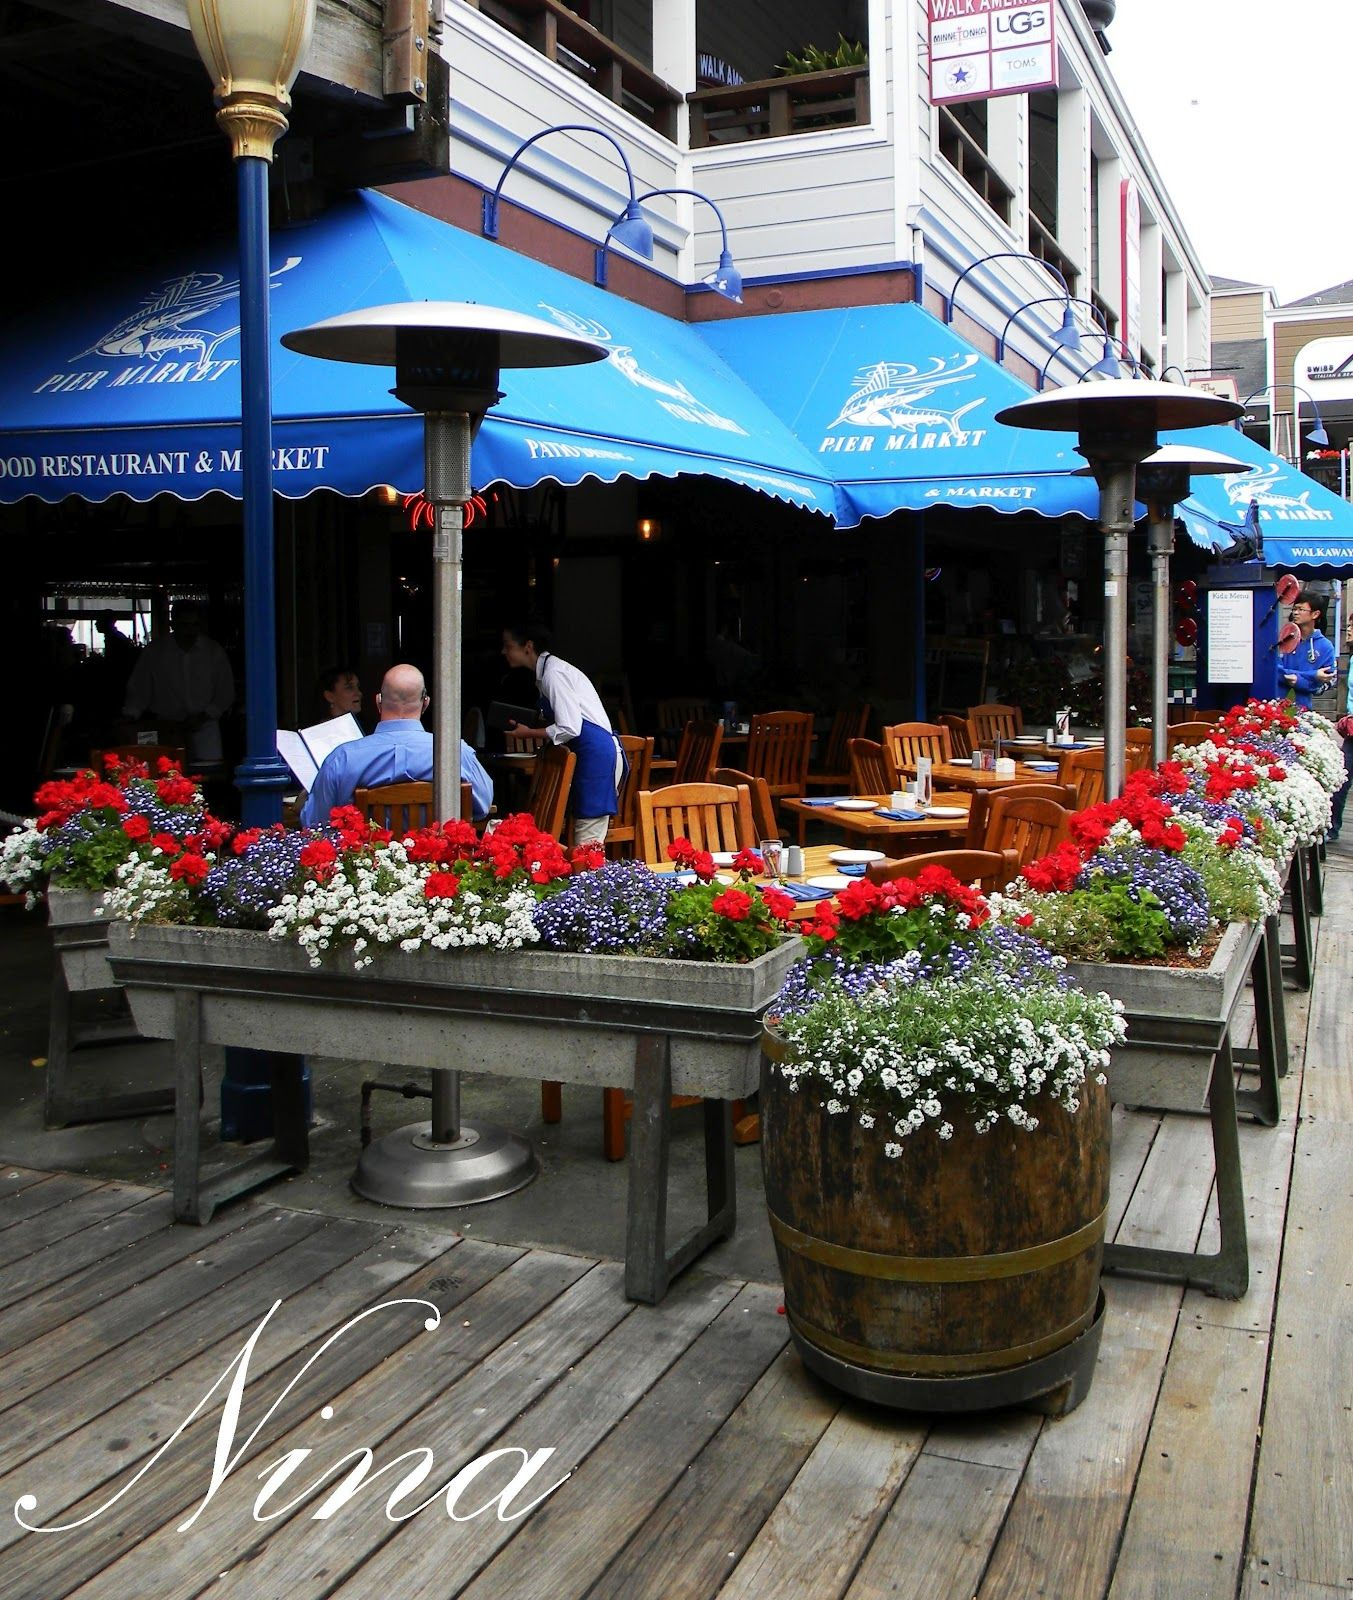 Great Outside Outdoor Pation Café Restaurant Curb Appeal Using